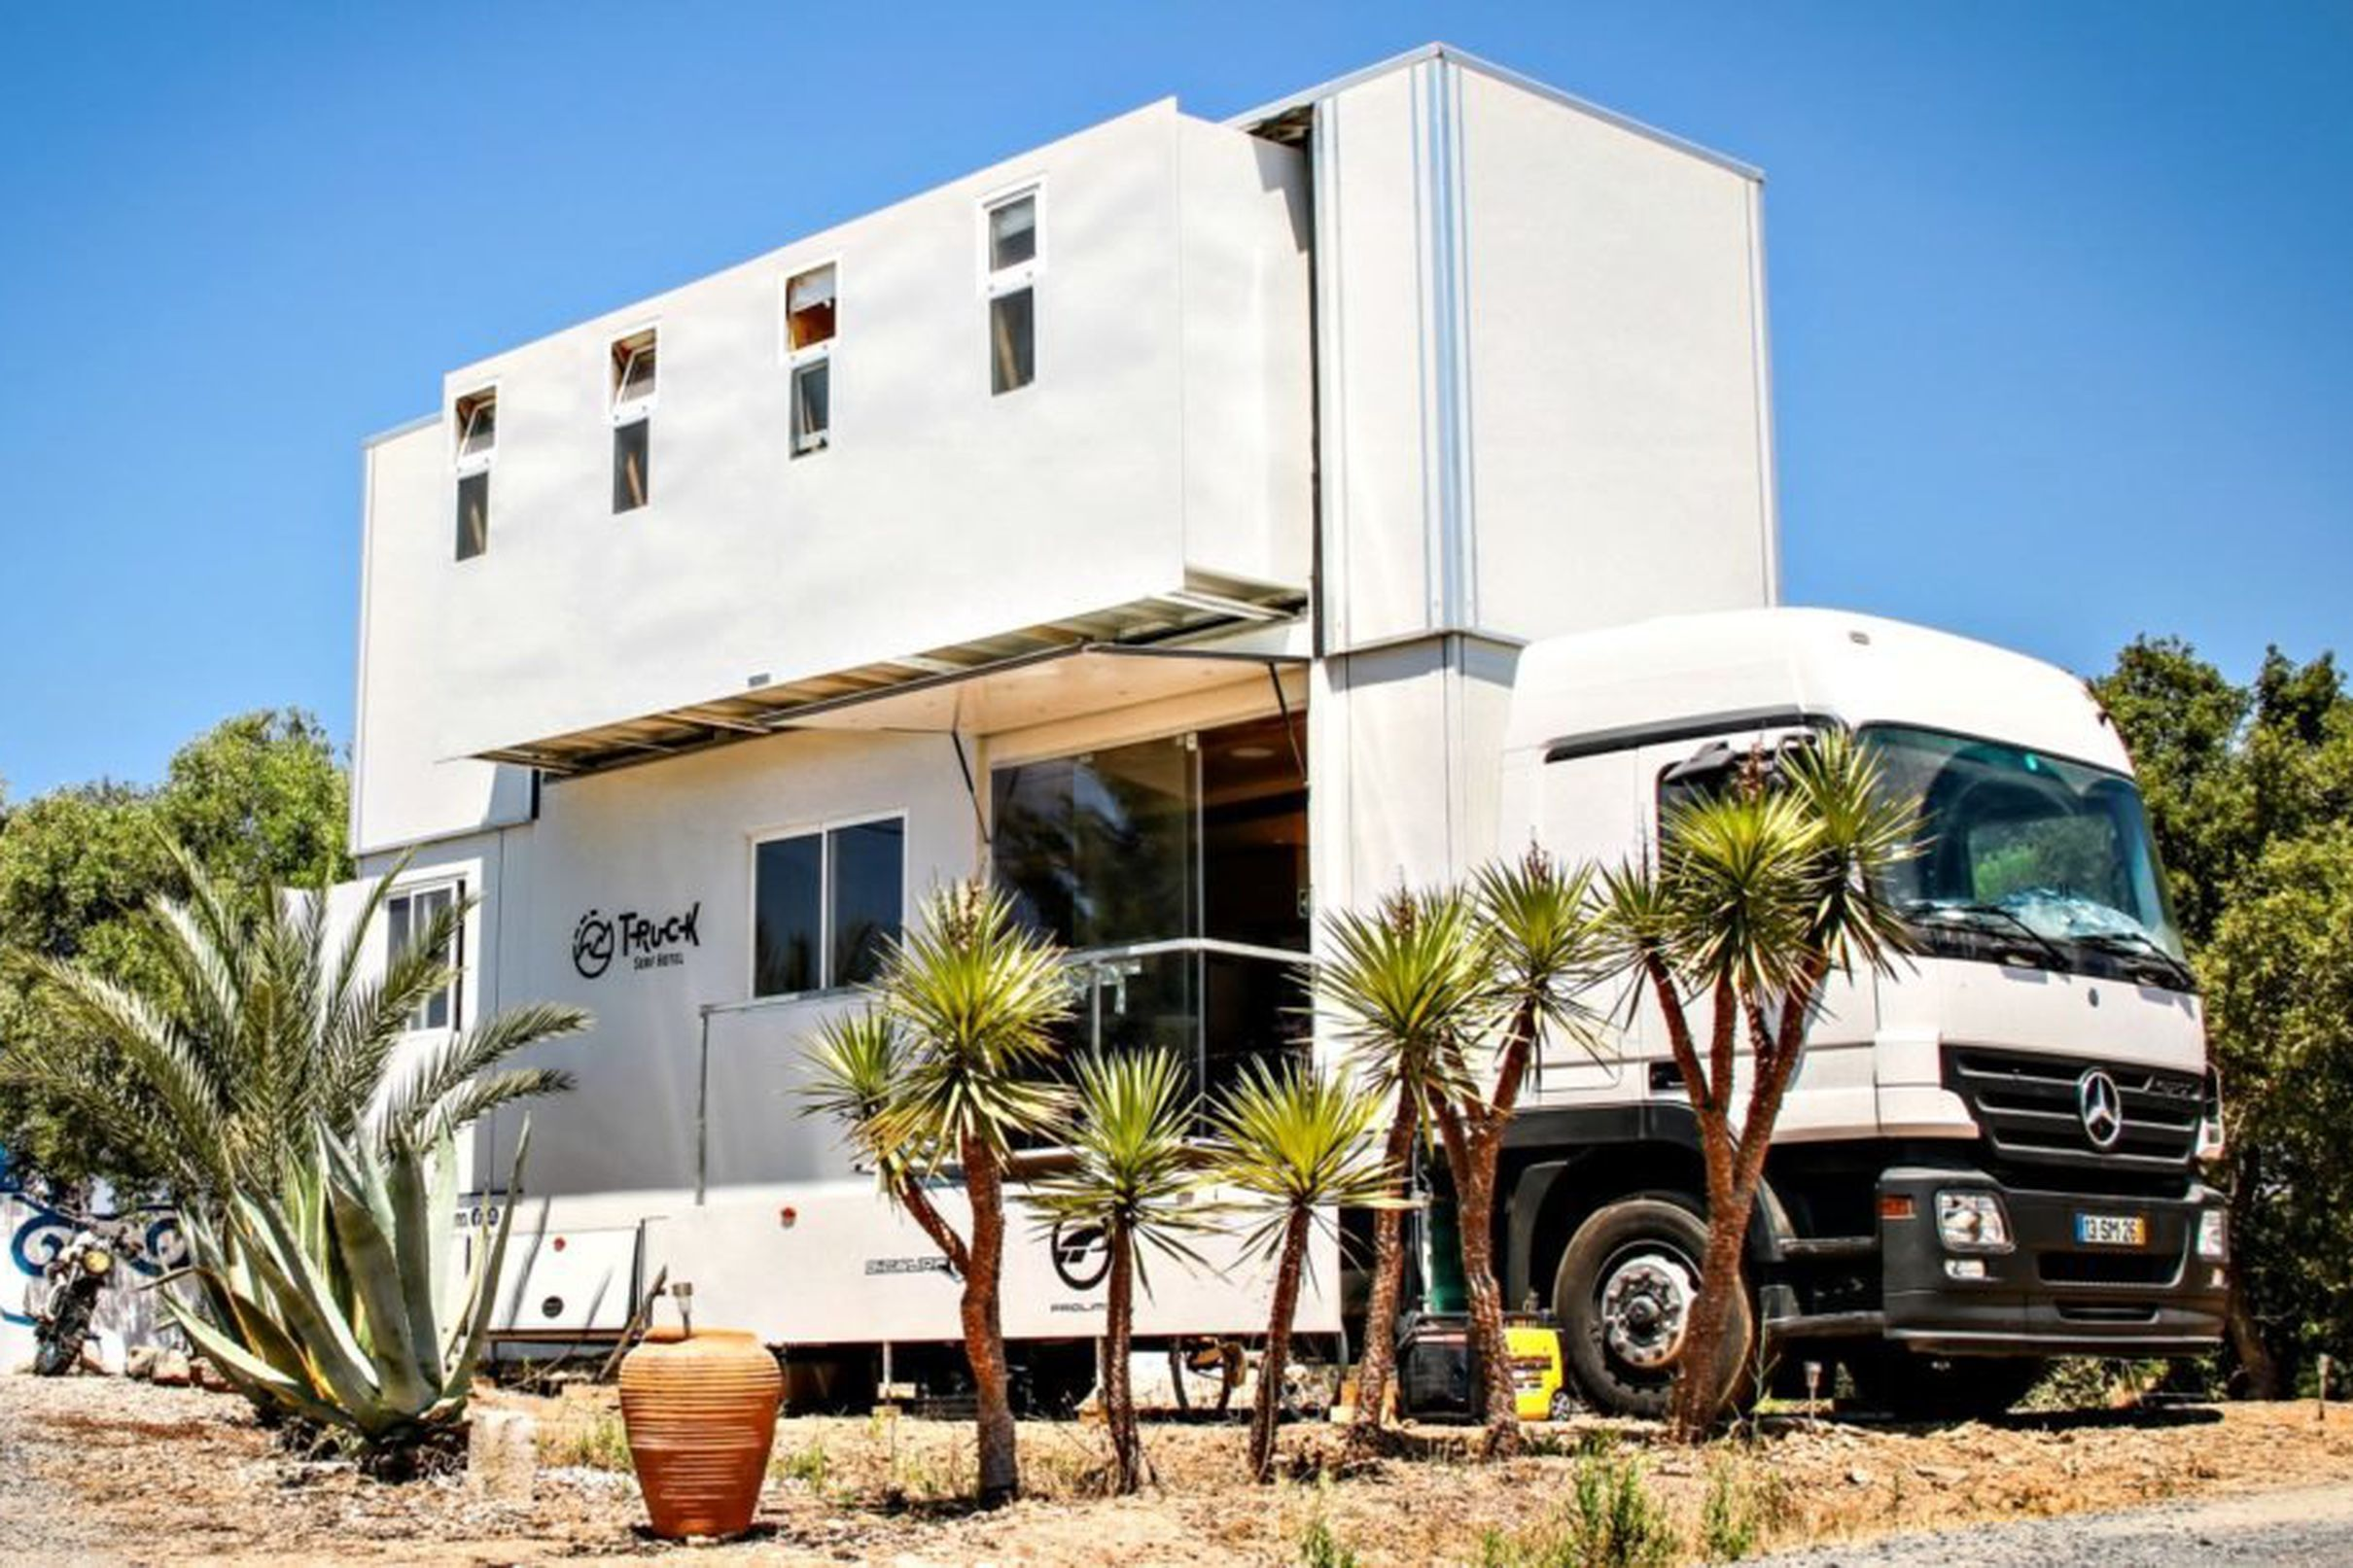 Truck Surf Hotel Is An Expandable Mobile Retreat For Wave Chasers Surfing Trucks Hotel